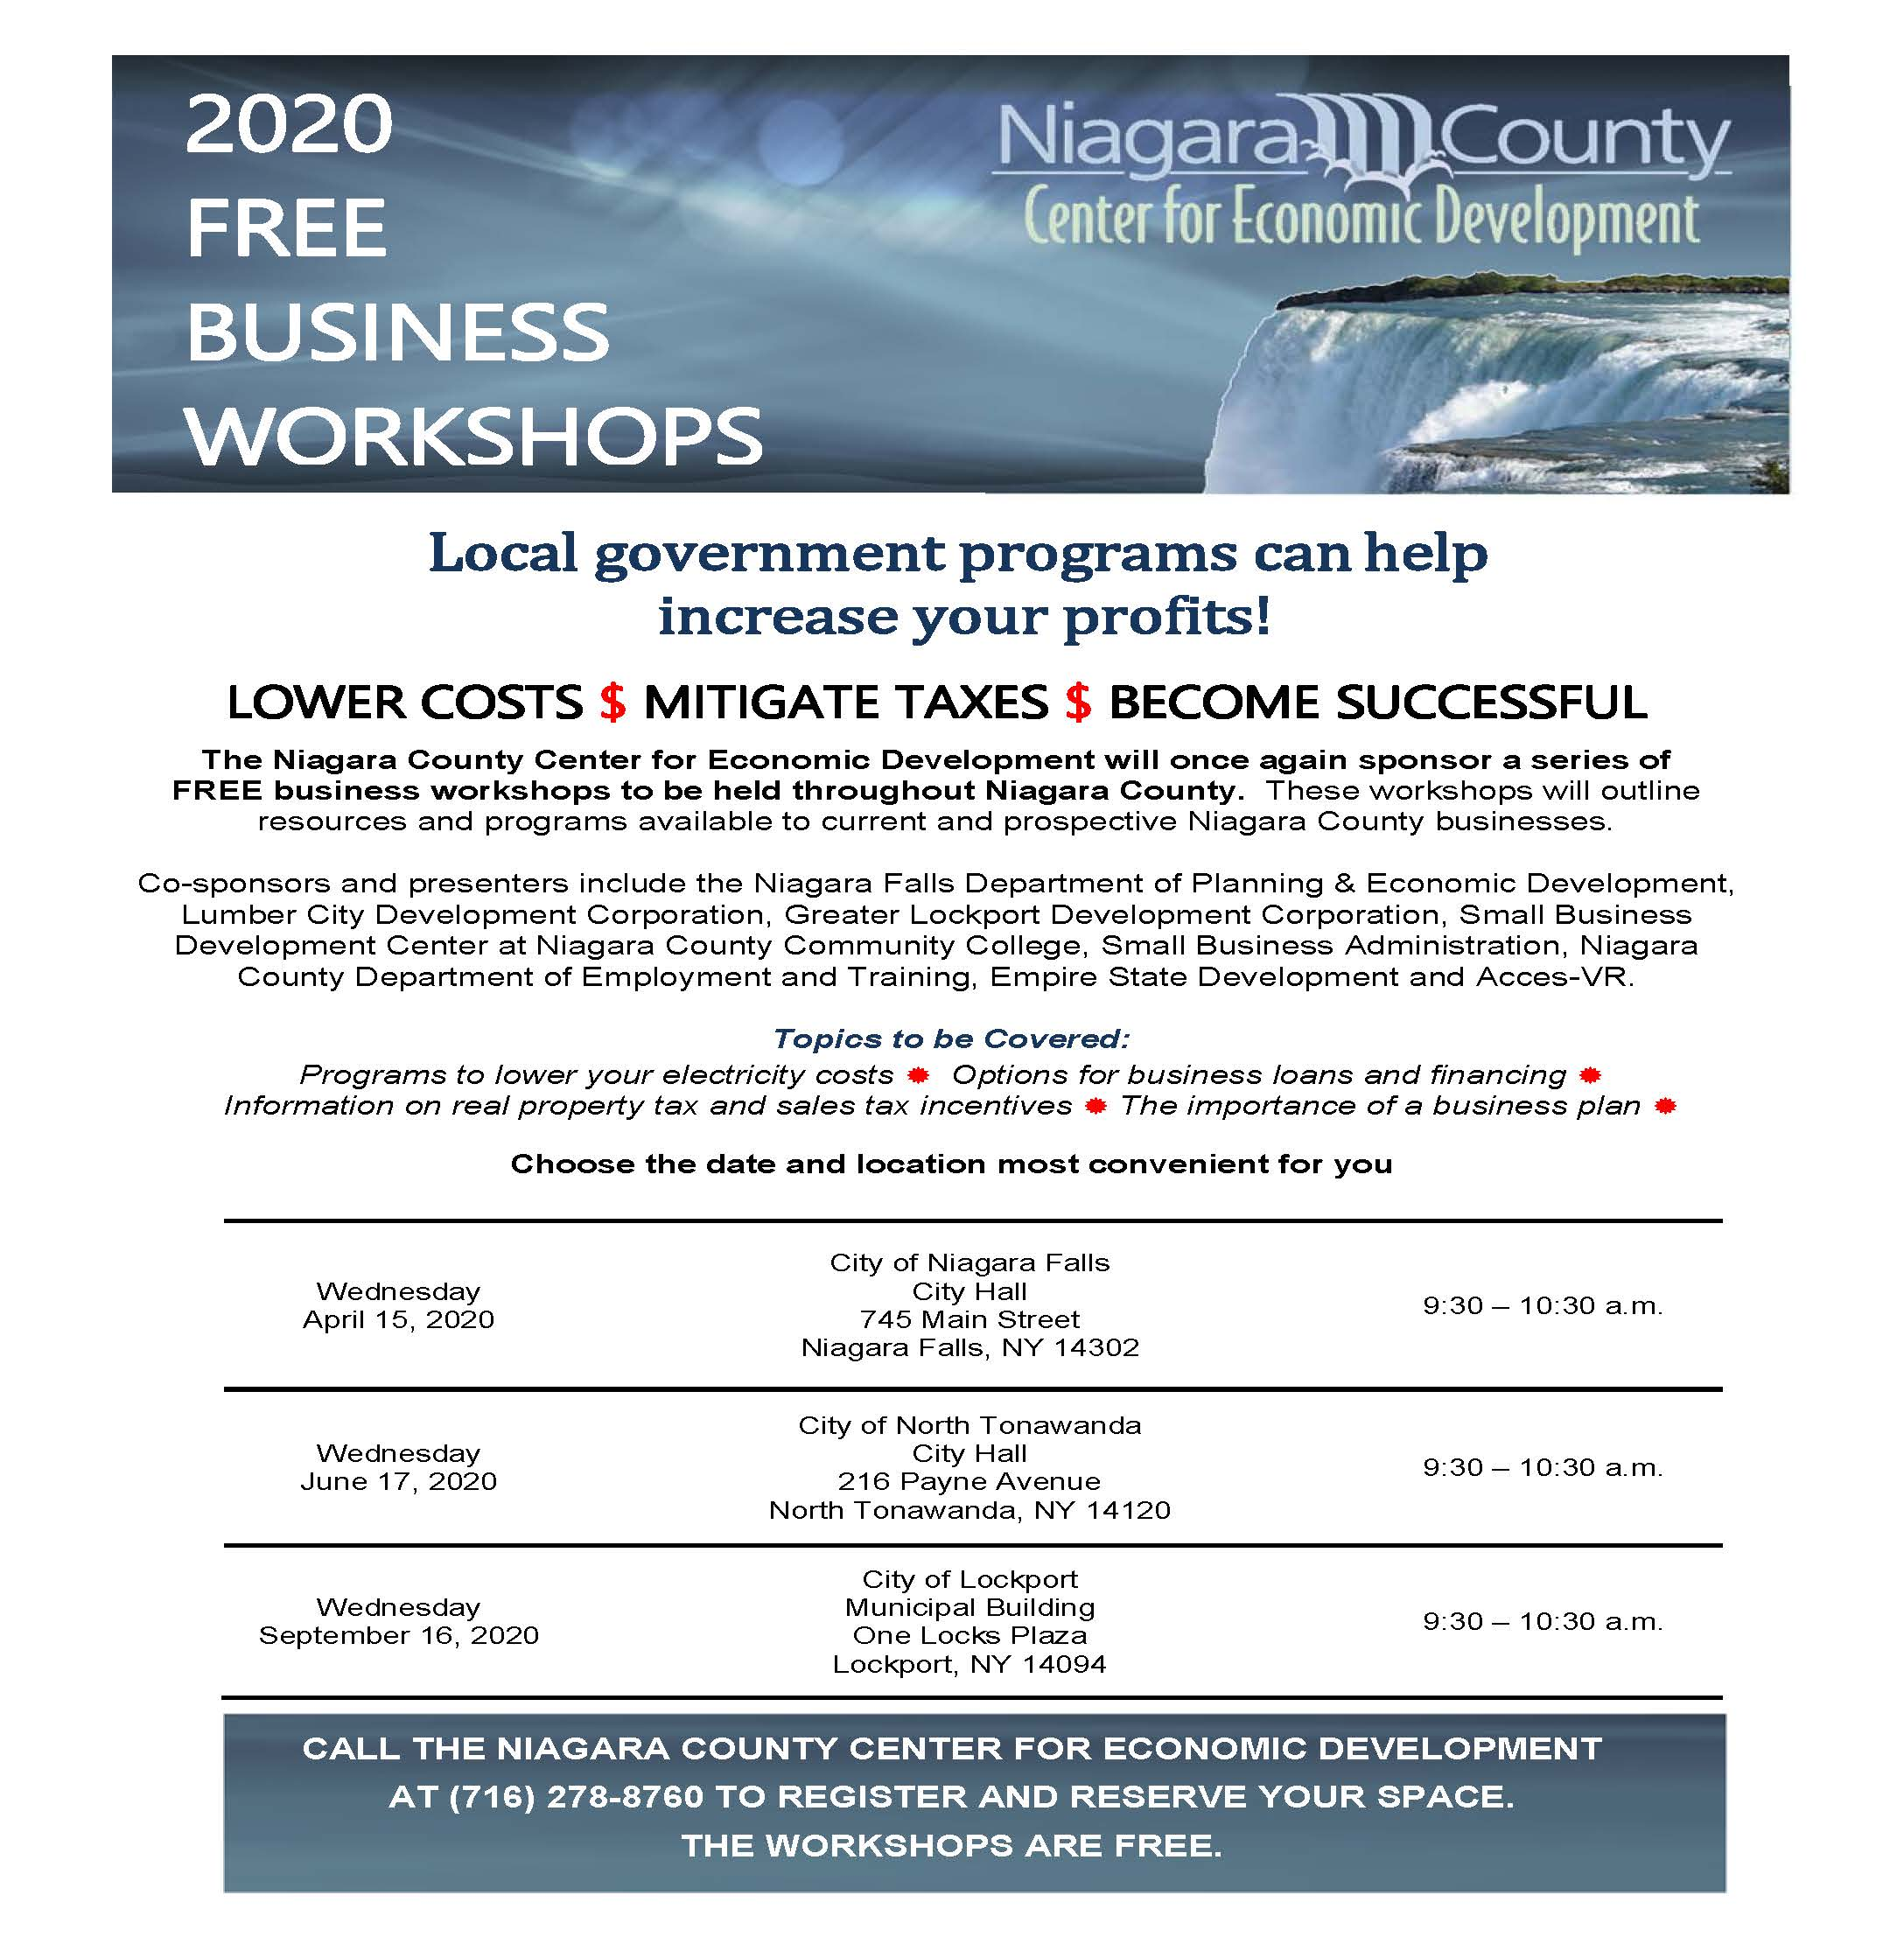 2020 Niagara County Free Business Workshops Series Announced